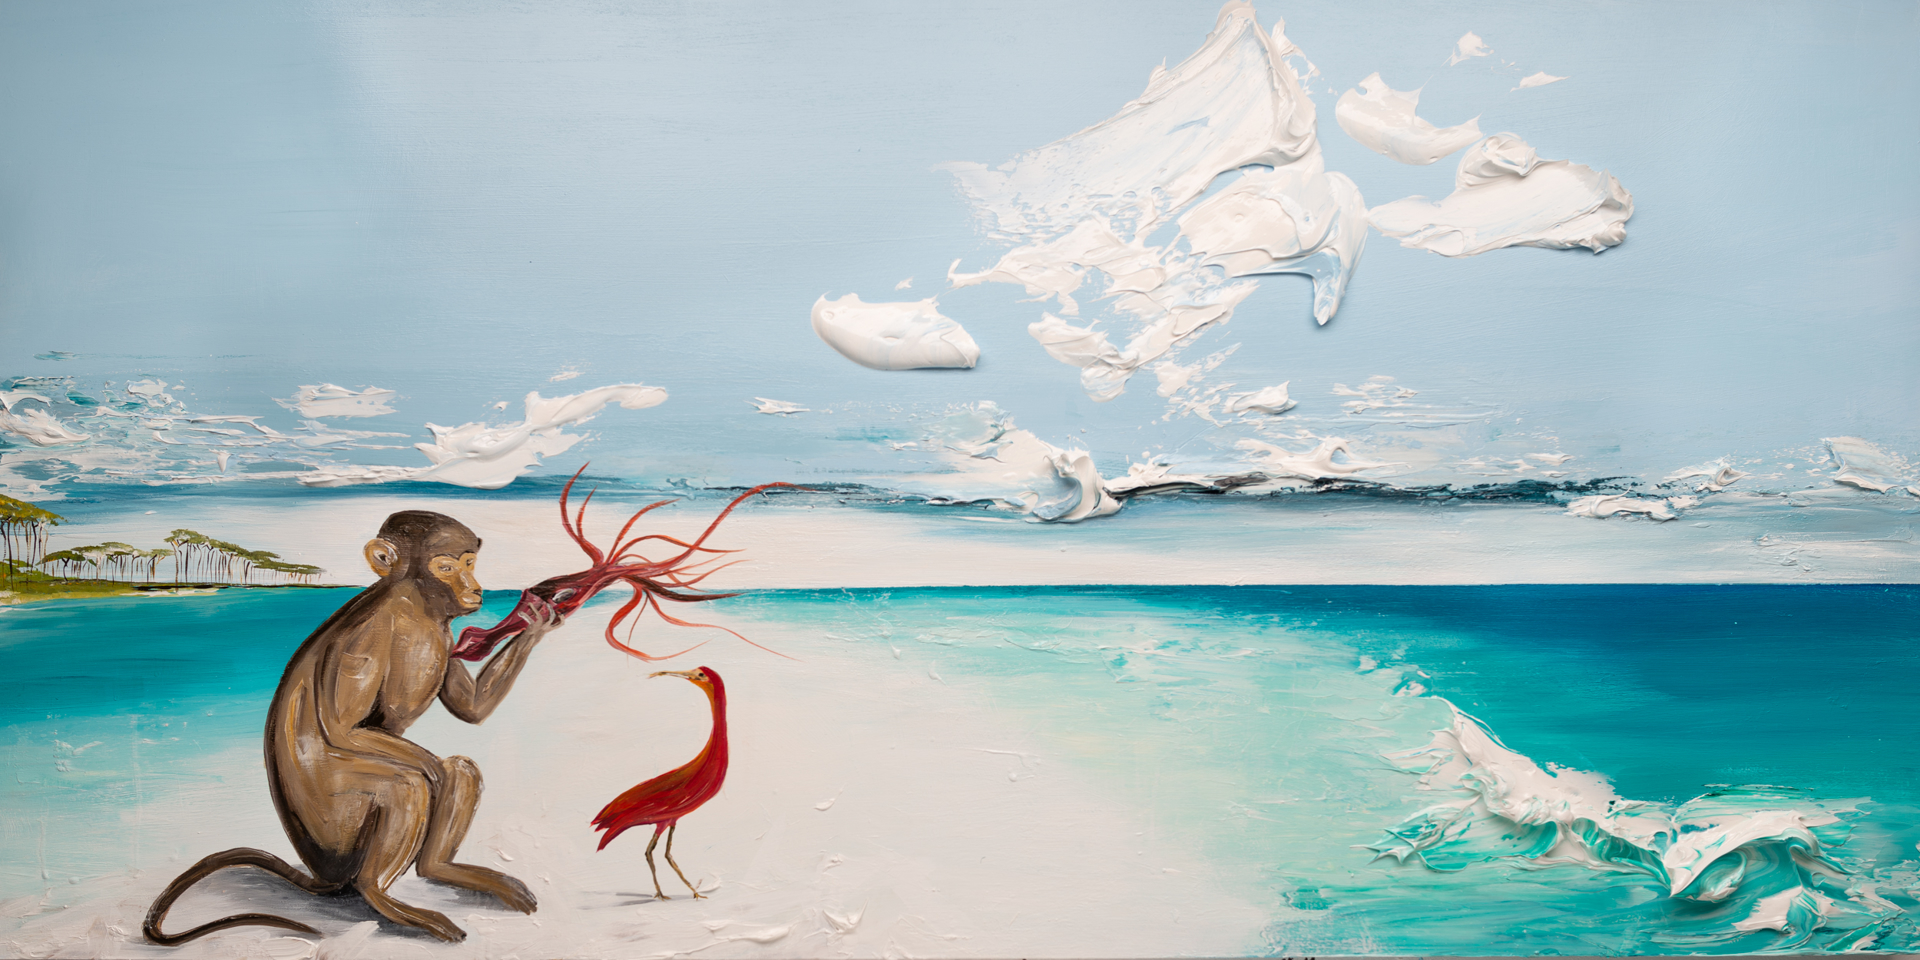 DAY AT BEACH WITH MONKEY SQUID AND SCARLET IBIS SS-72x36-2020-077 by JUSTIN GAFFREY